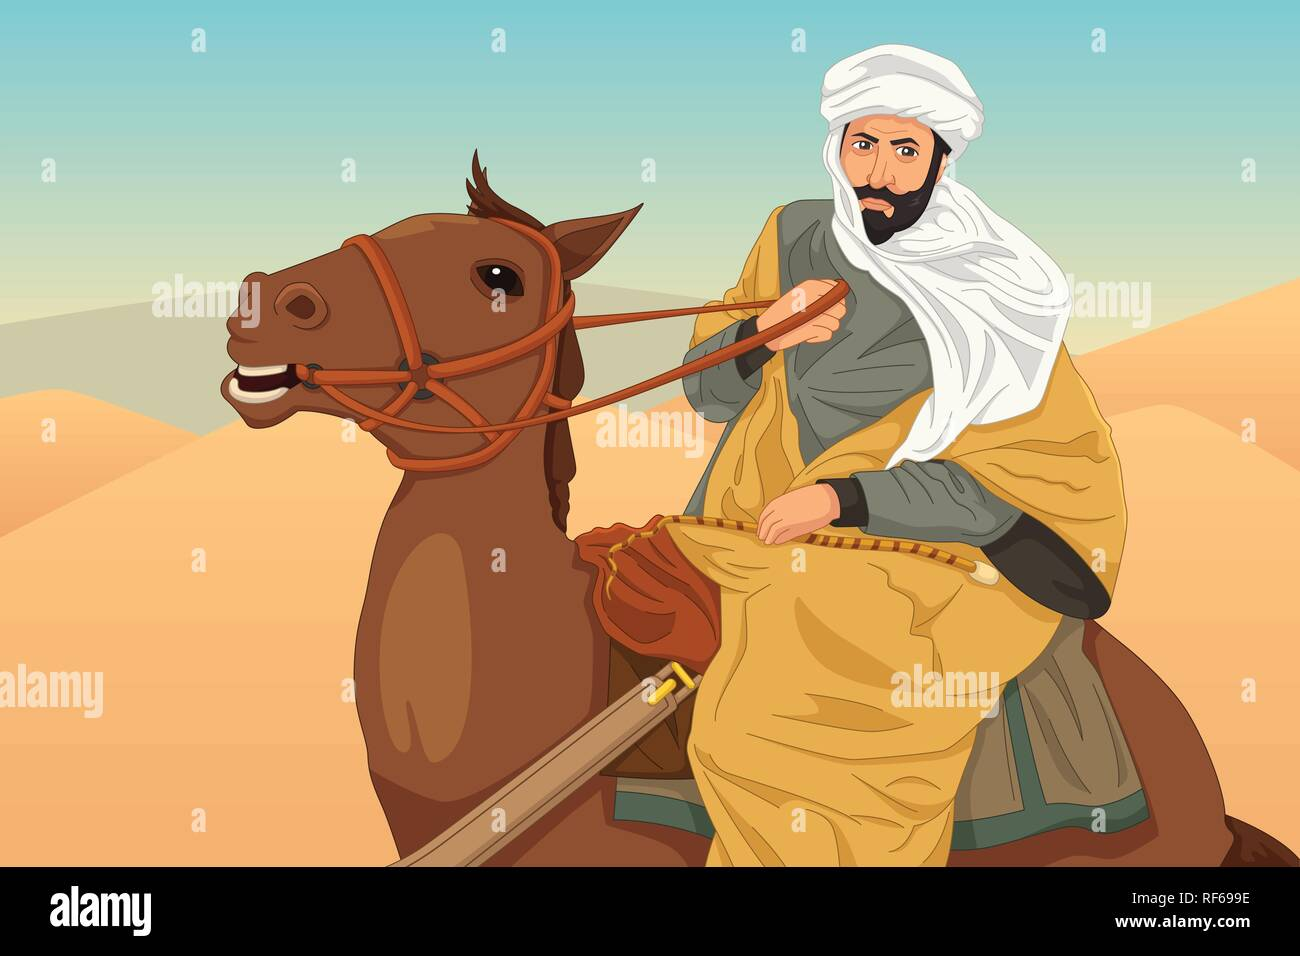 A vector illustration of Ibn Battuta Riding a Horse - Stock Vector